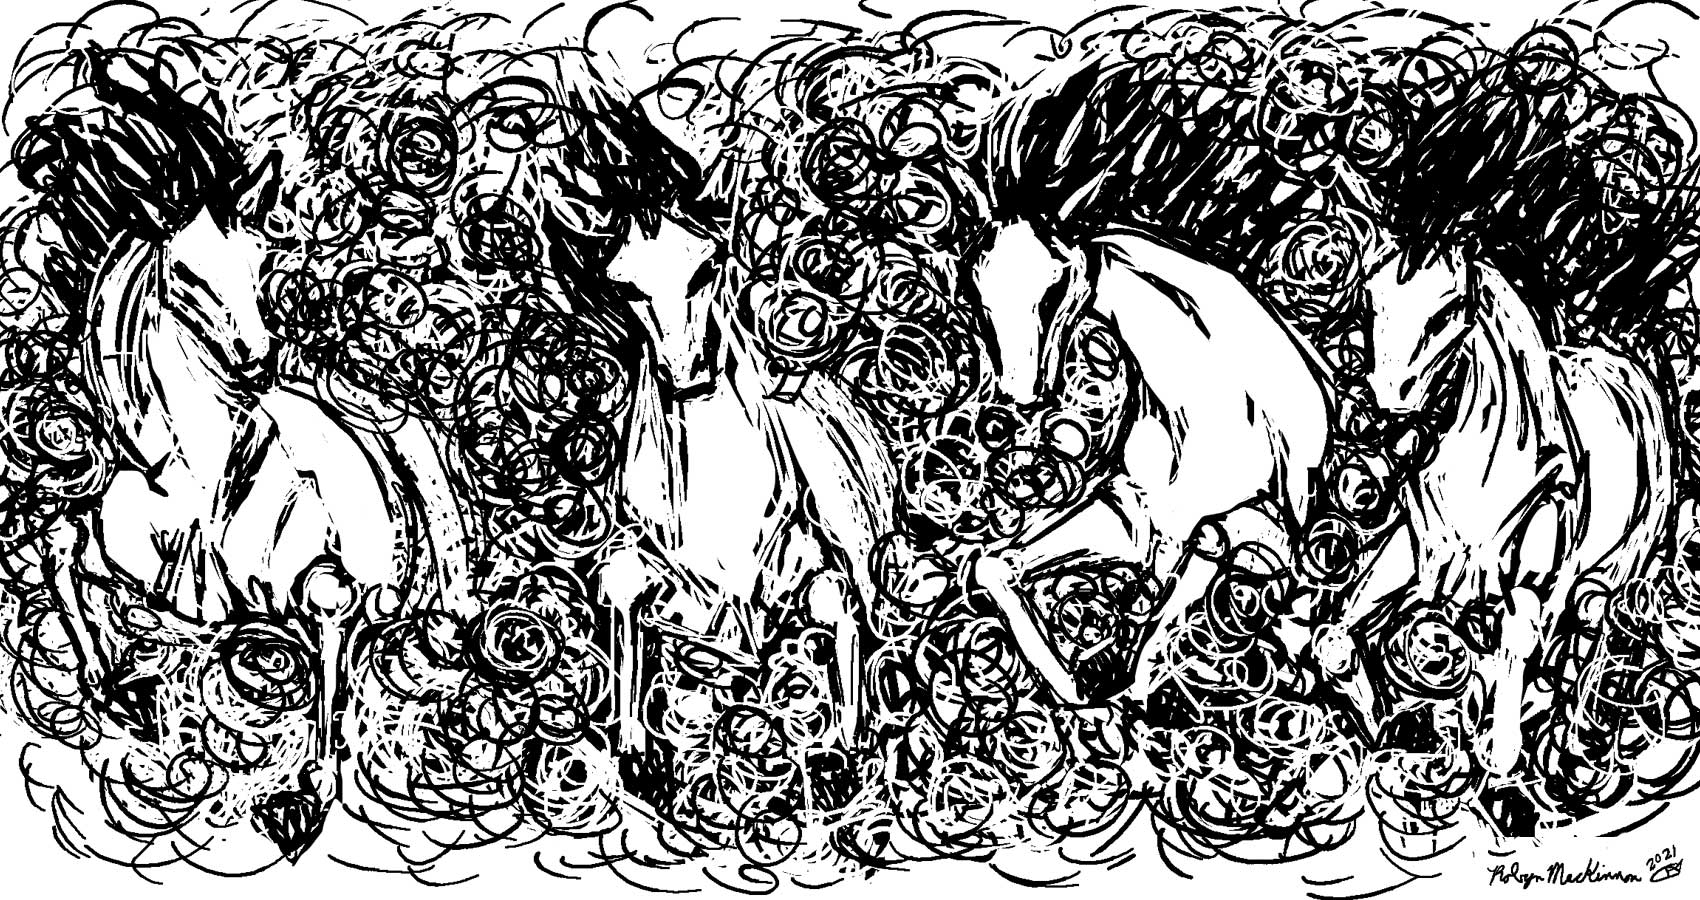 All The King's Horses, a haiku by Robyn MacKinnon at Spillwords.com